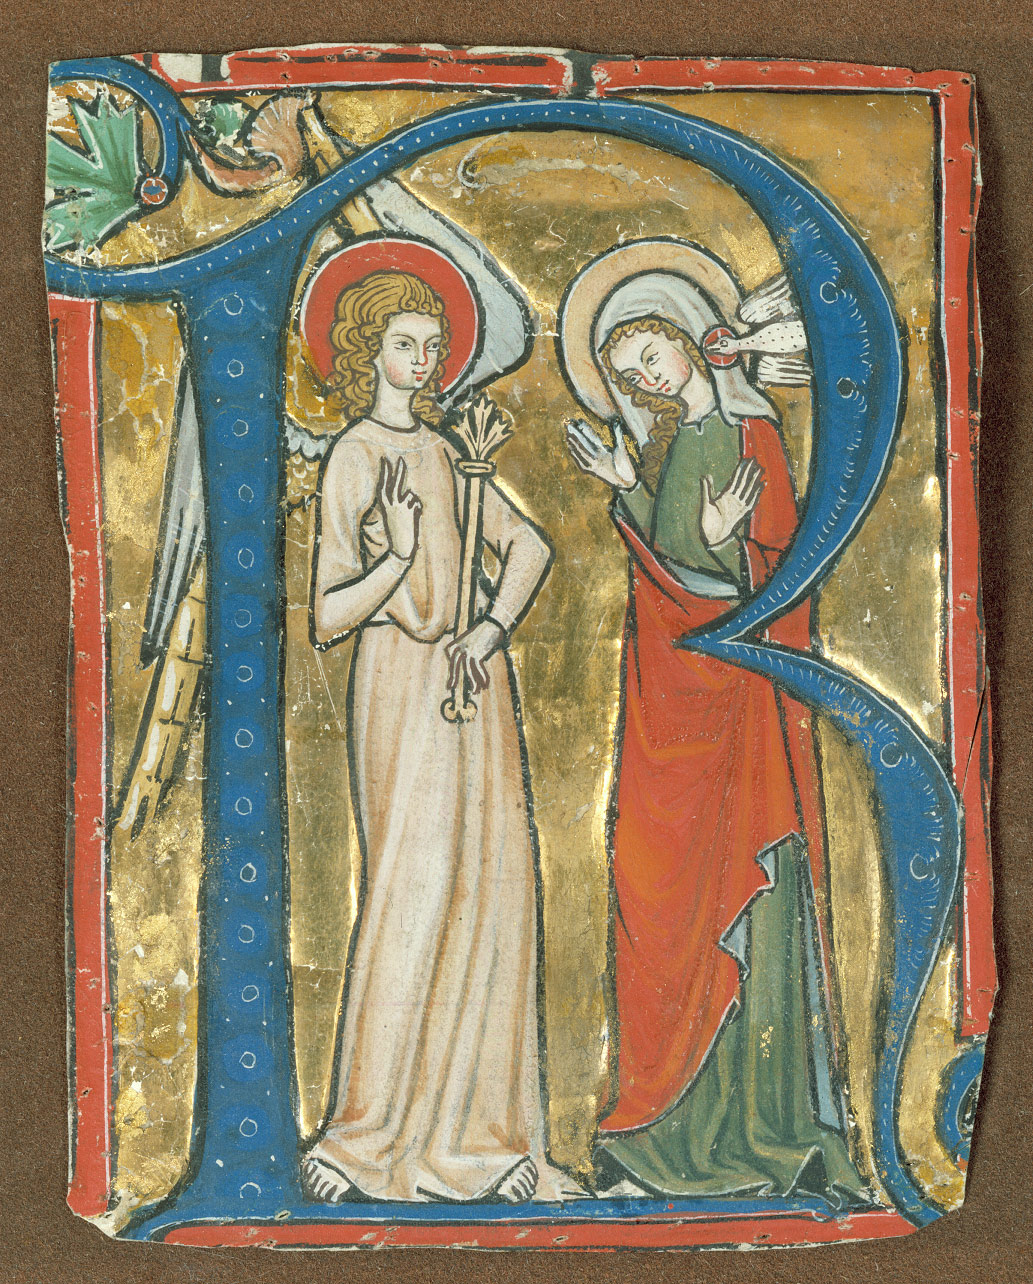 ... Manuscript Illumination with the Annunciation in an Initial R, from a  Gradual ...